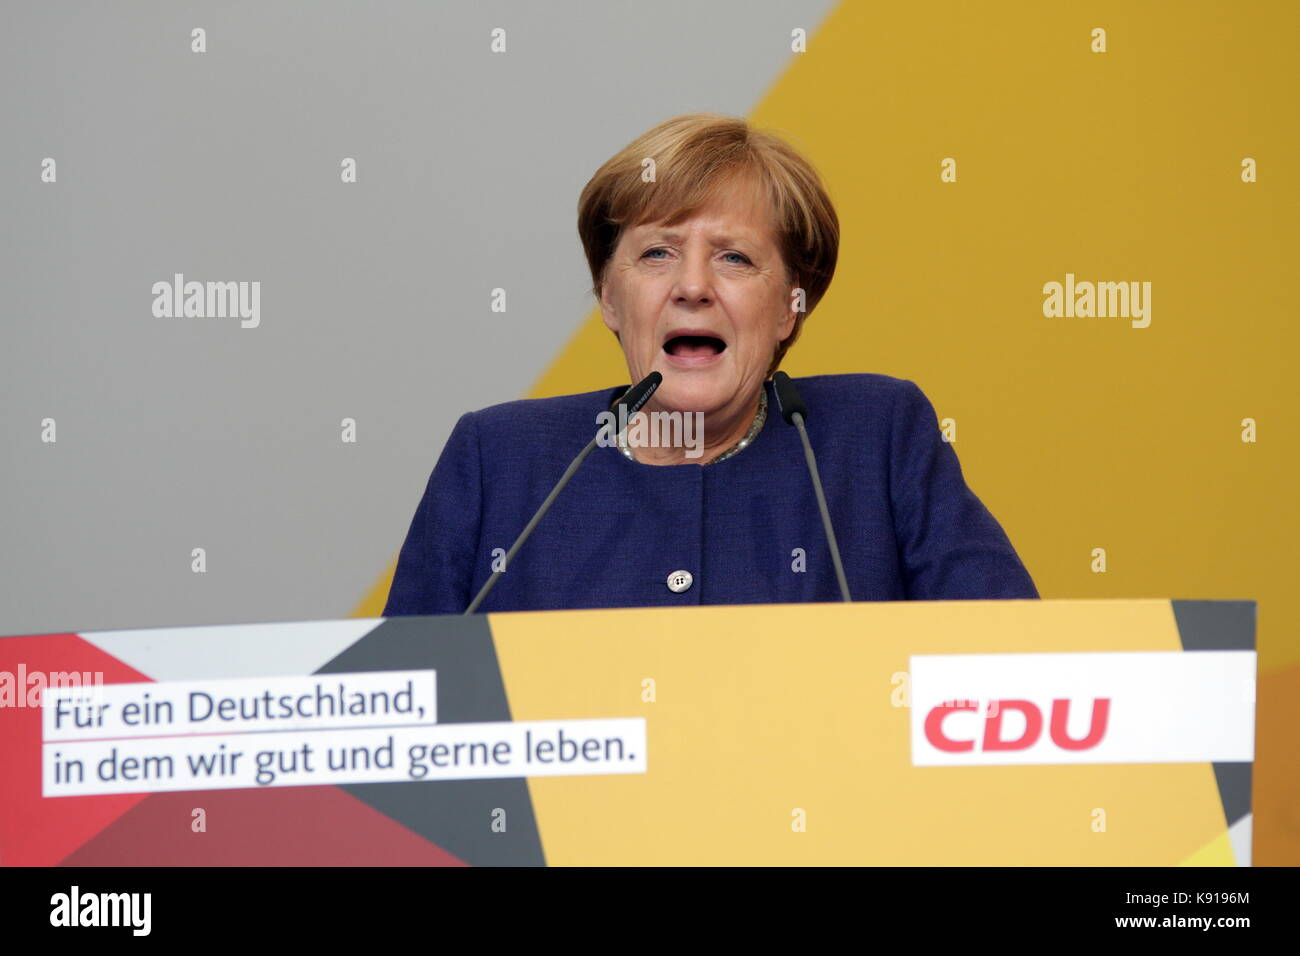 Giessen, Germany. 21st September, 2017. Angela Merkel, Chancellor of Germany holds an election campaign speech as - Stock Image